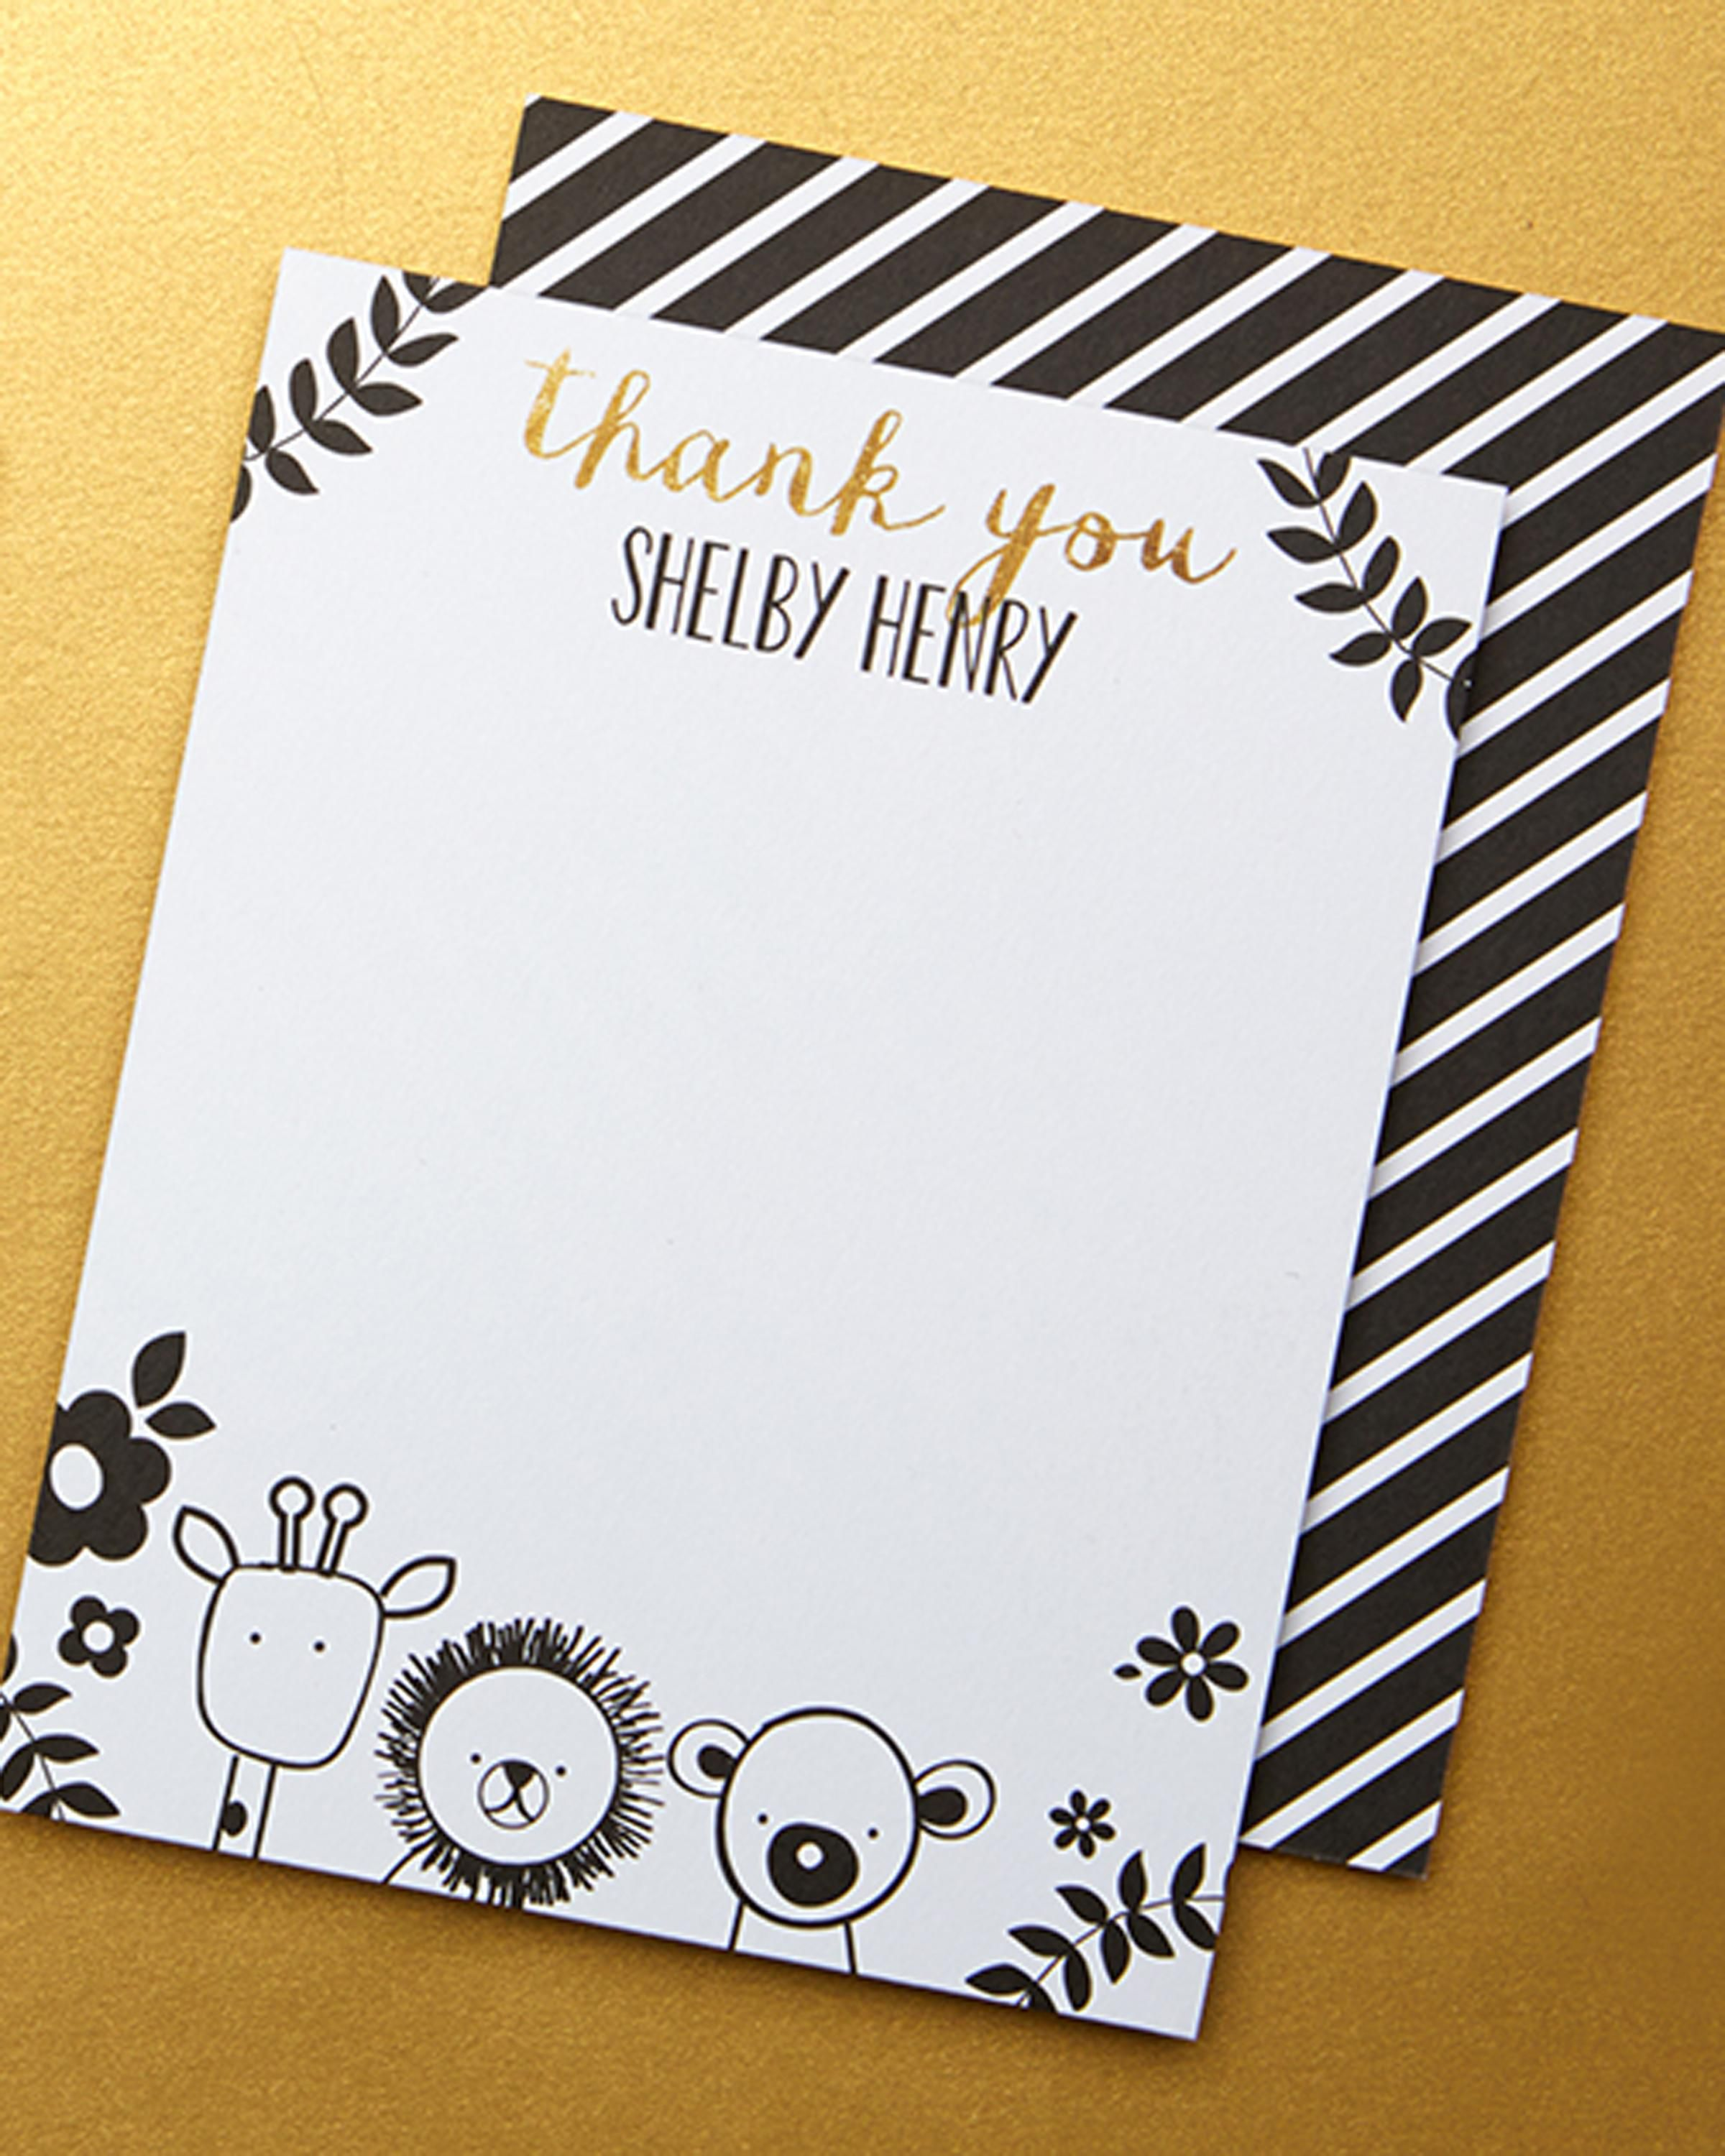 Find A Thank You Card Design That Fits Your Style Tiny Prints